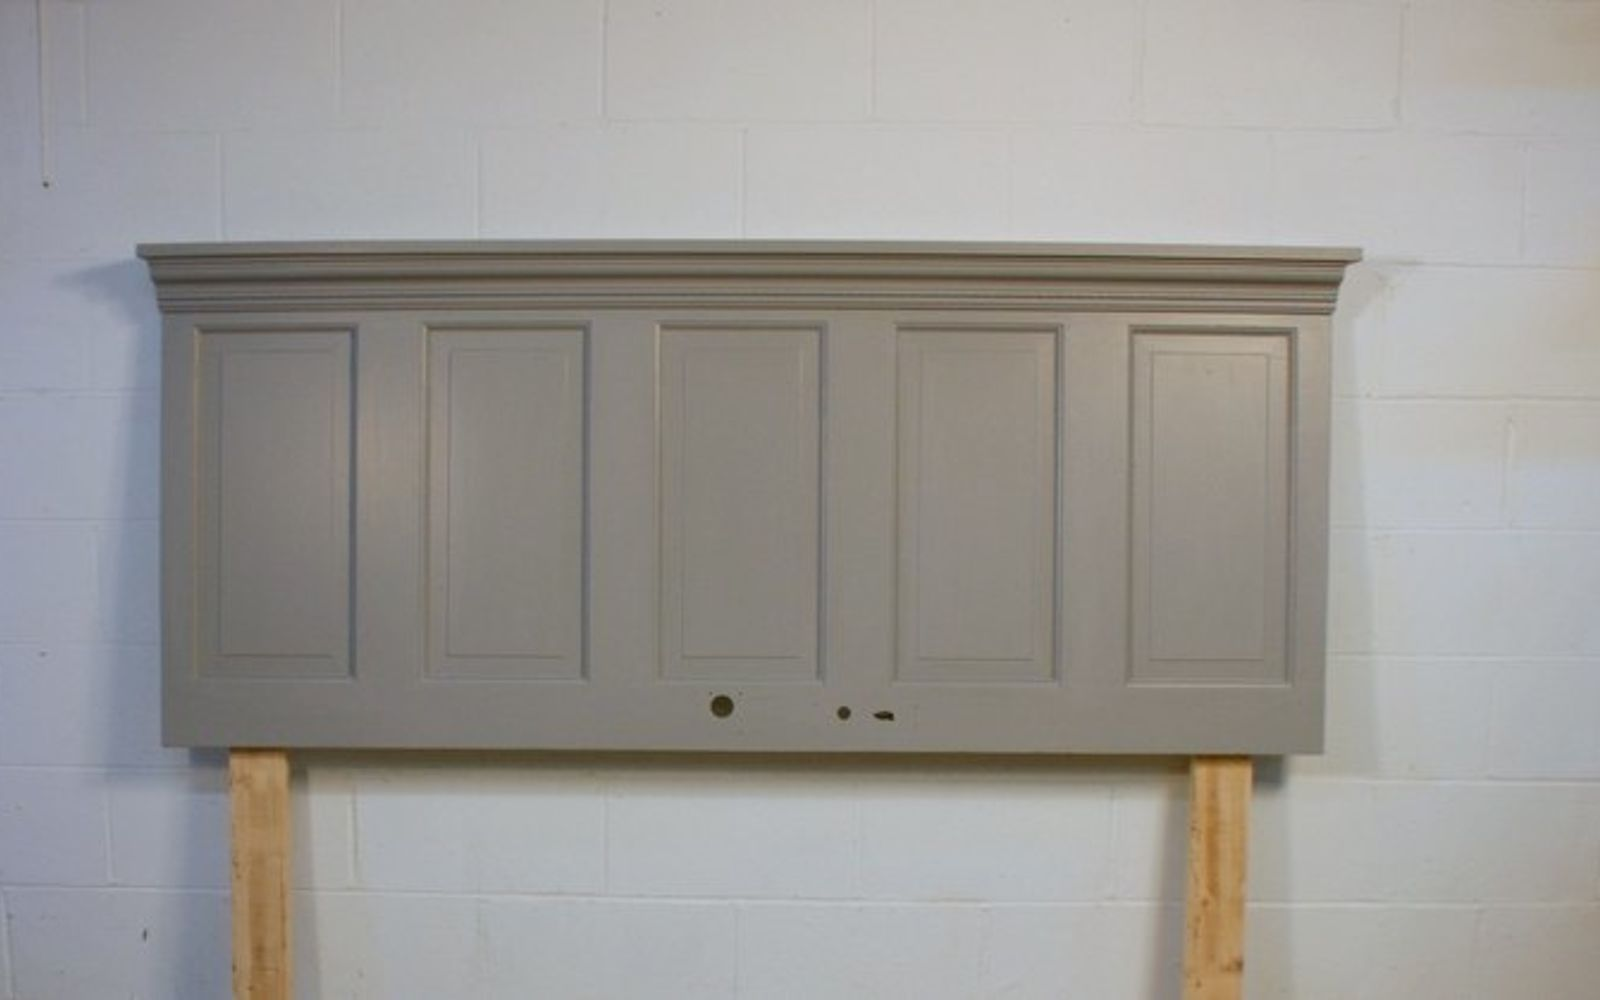 s these are the diy headboard ideas you ve been dreaming of, Convert An Old Door To This Matte Beauty